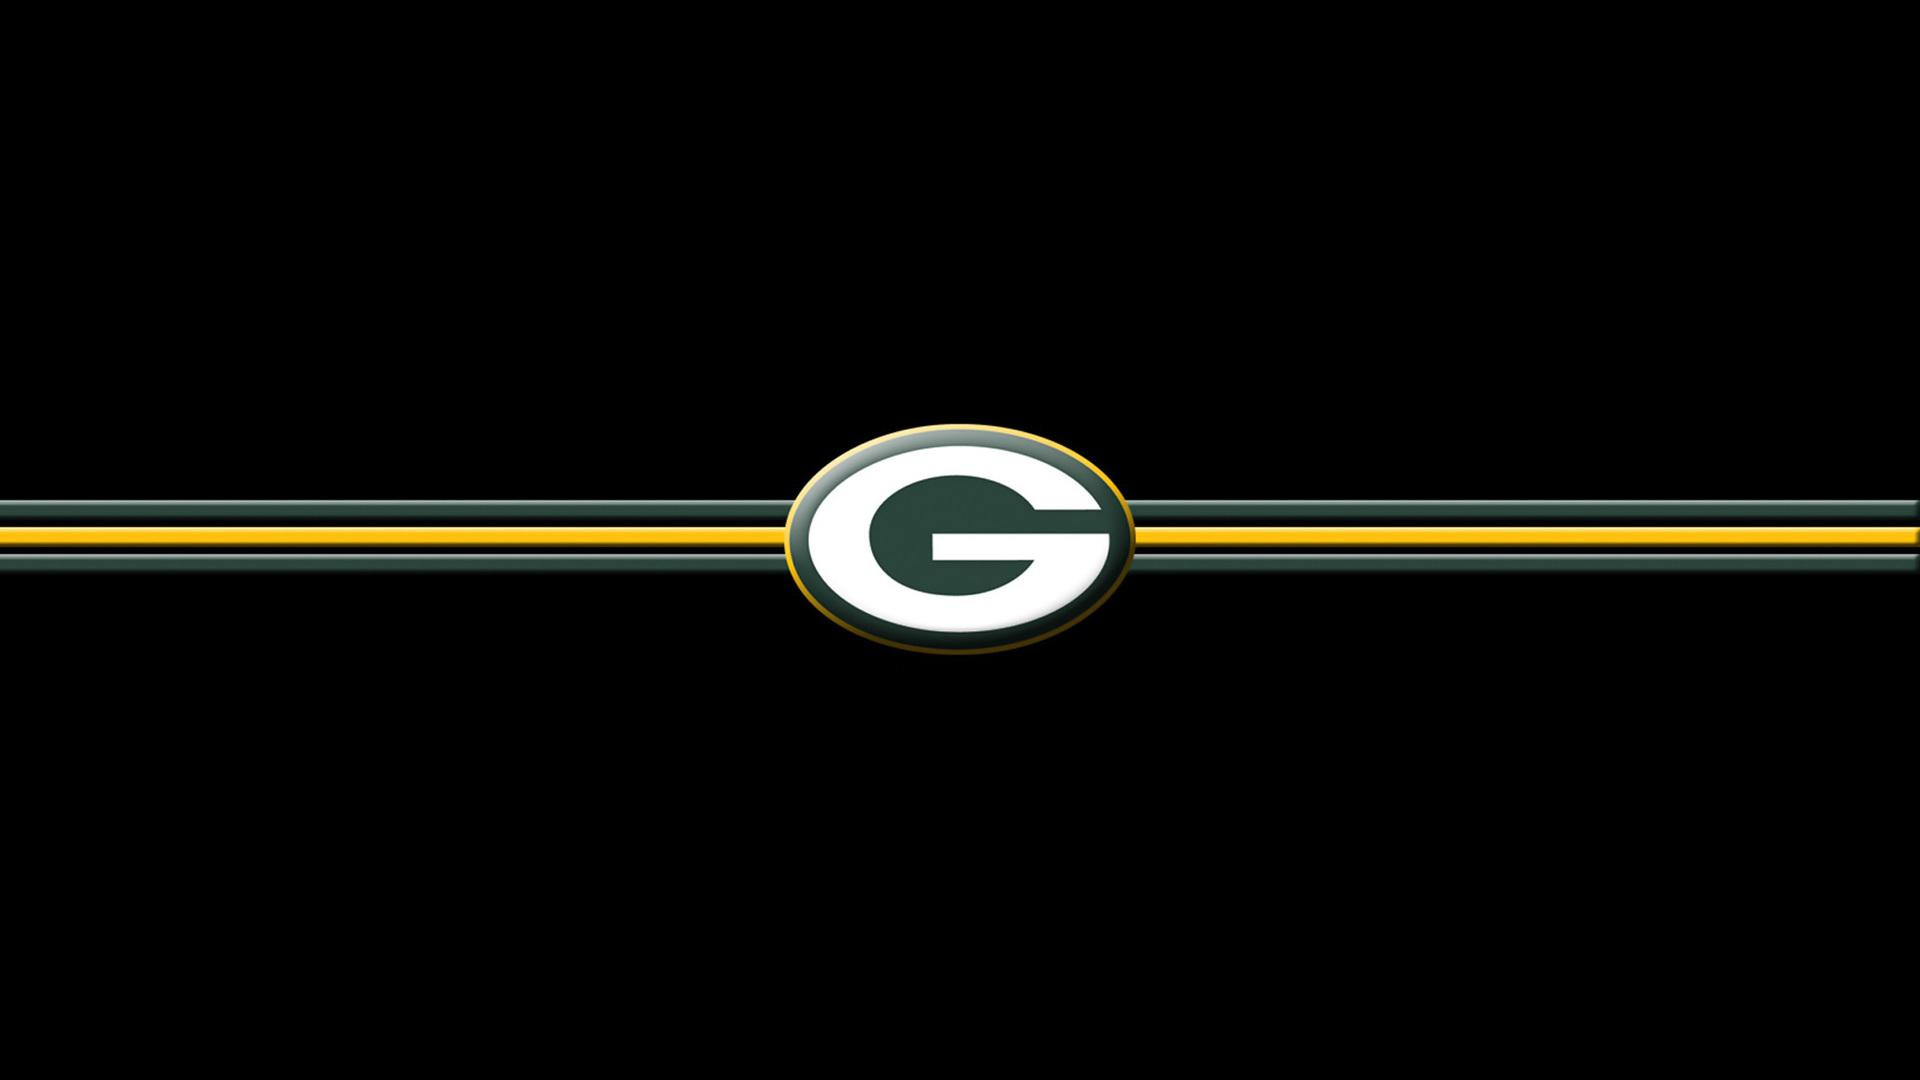 Hd Green Bay Packers Wallpaper Download Free 147541